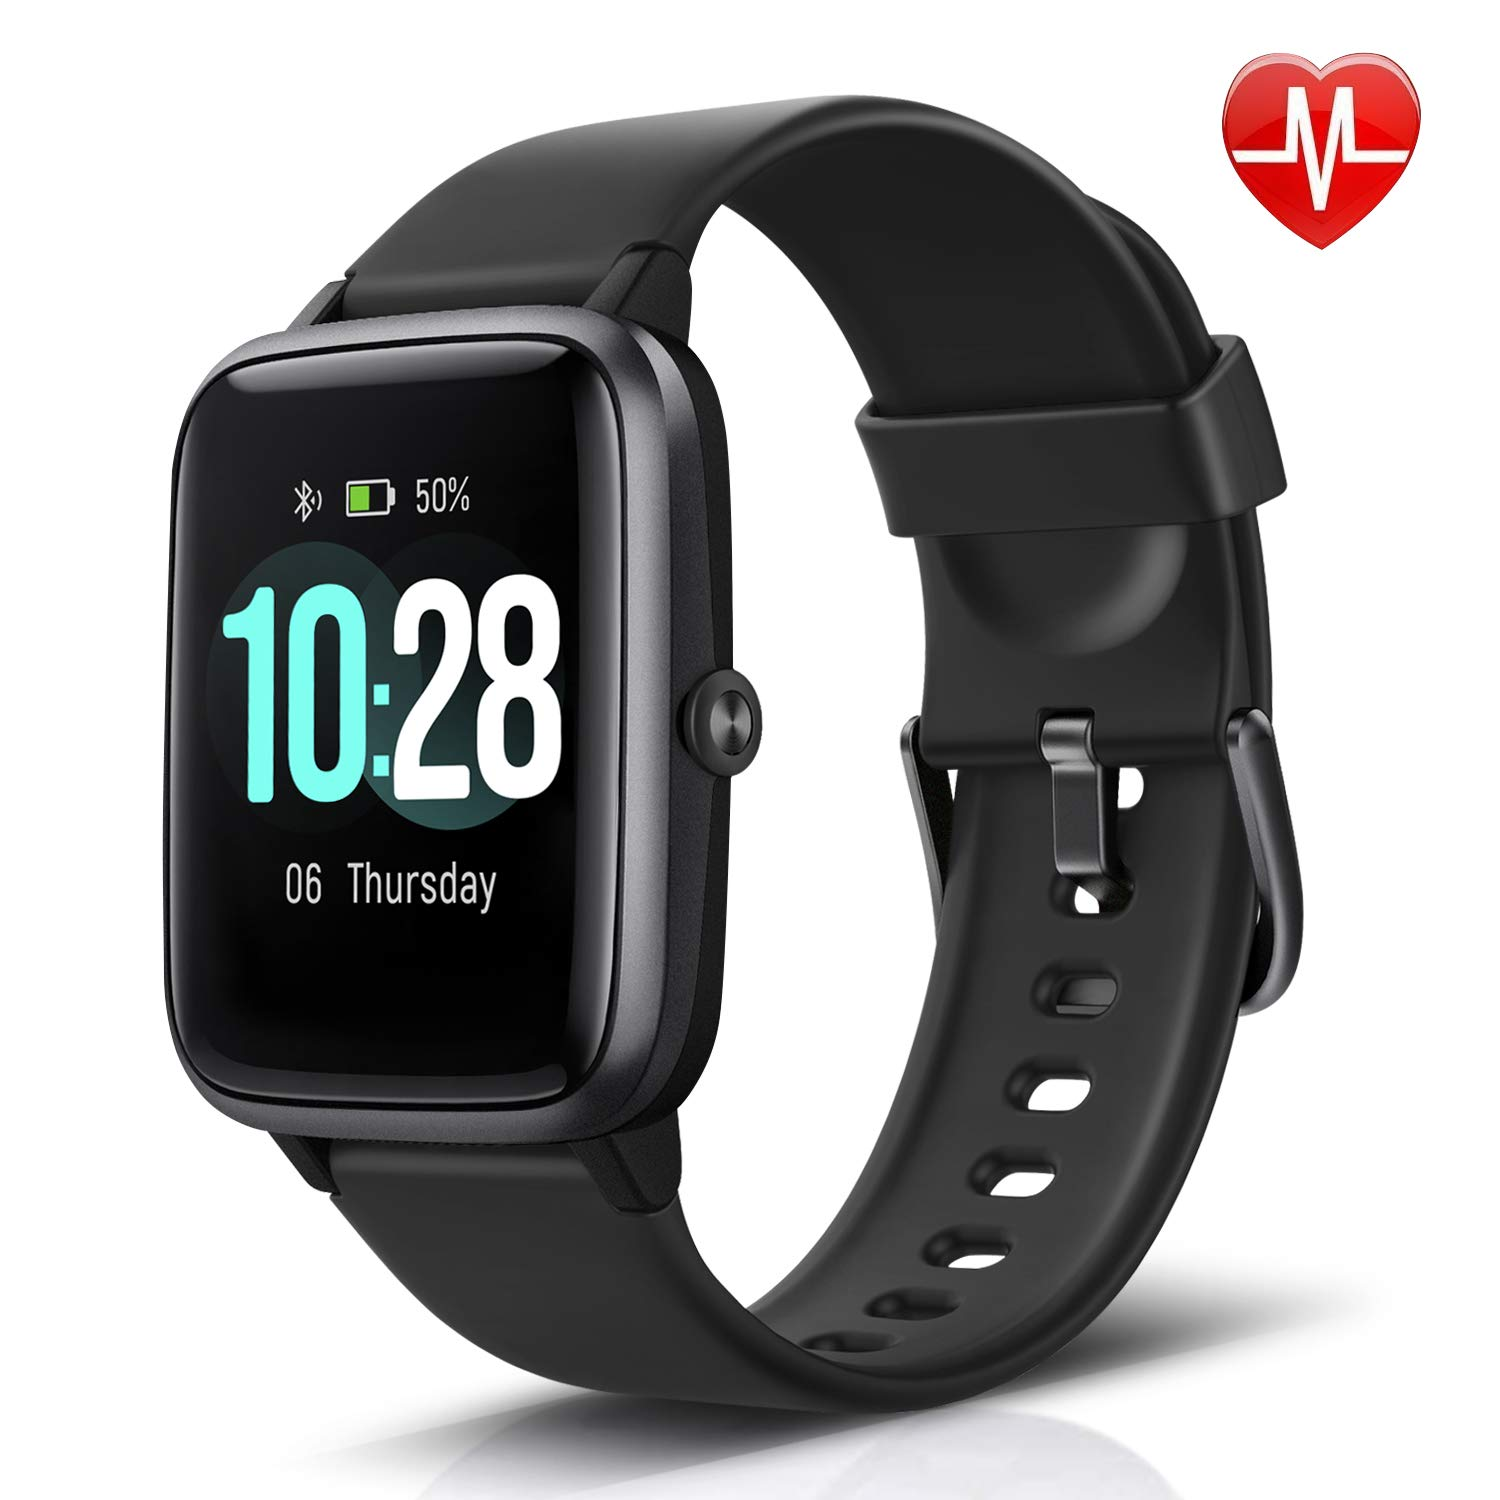 LETSCOM Fitness Tracker with Heart Rate Monitor, Smart Watch, Activity Tracker, Step Counter, Sleep Monitor, Calorie Counter, 1.3'' Touch Screen, IP68 Waterproof Pedometer Watch for Kids Women Men by LETSCOM